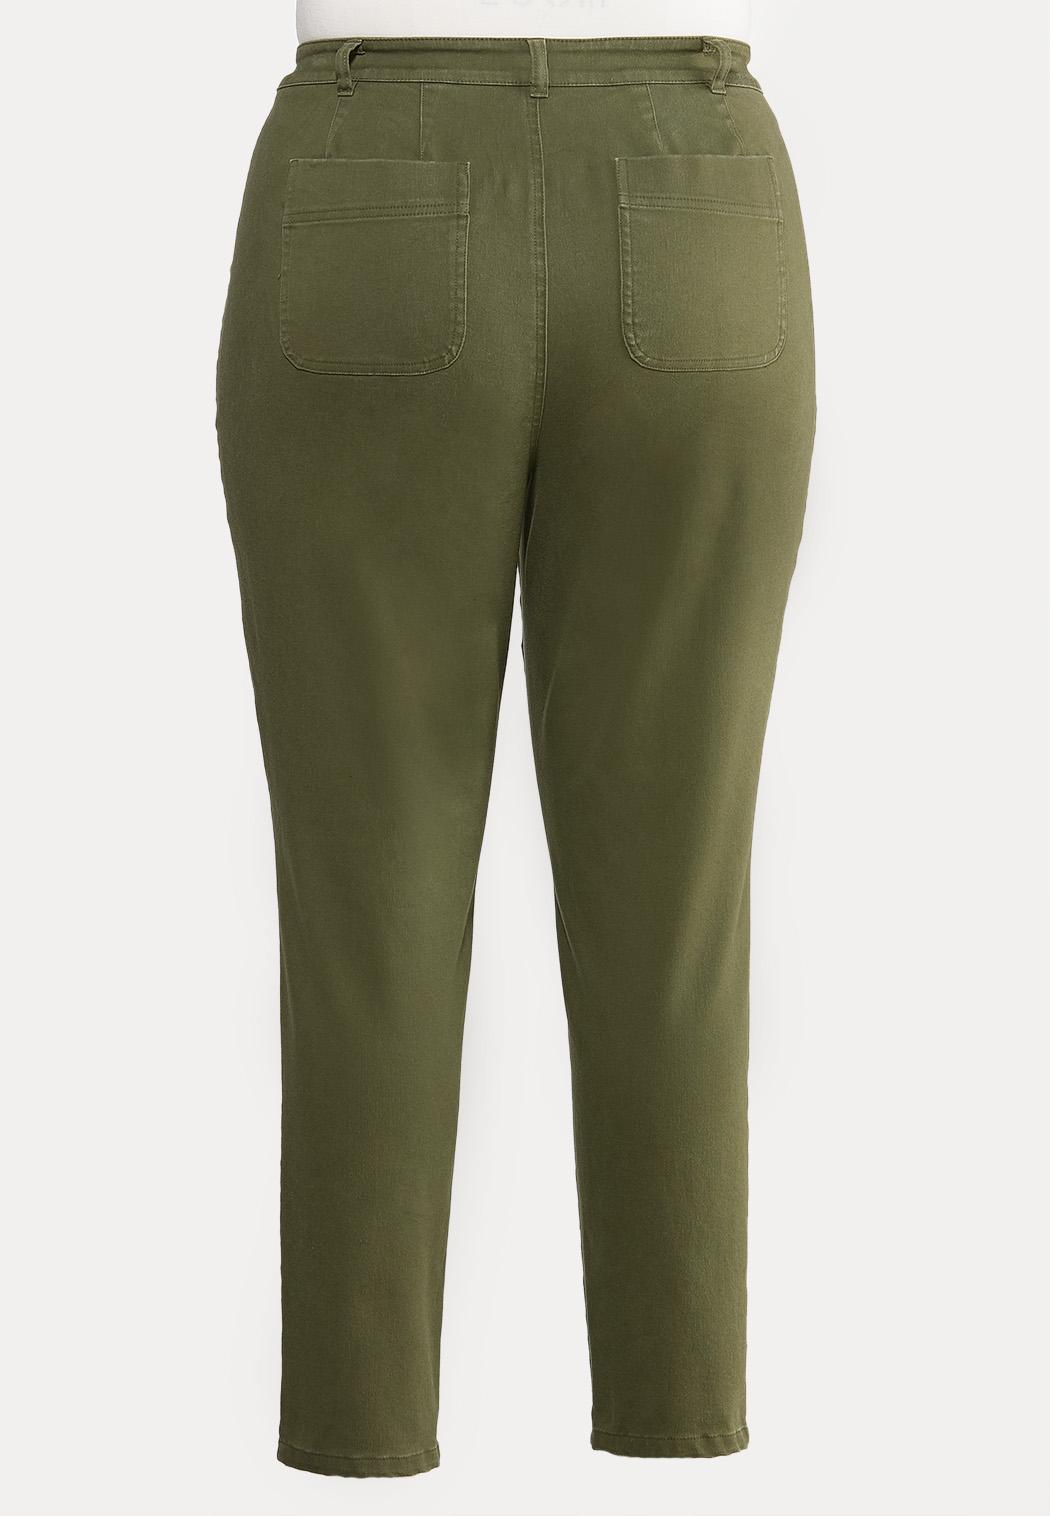 Plus Extended Olive Utility Jeans (Item #43933476)